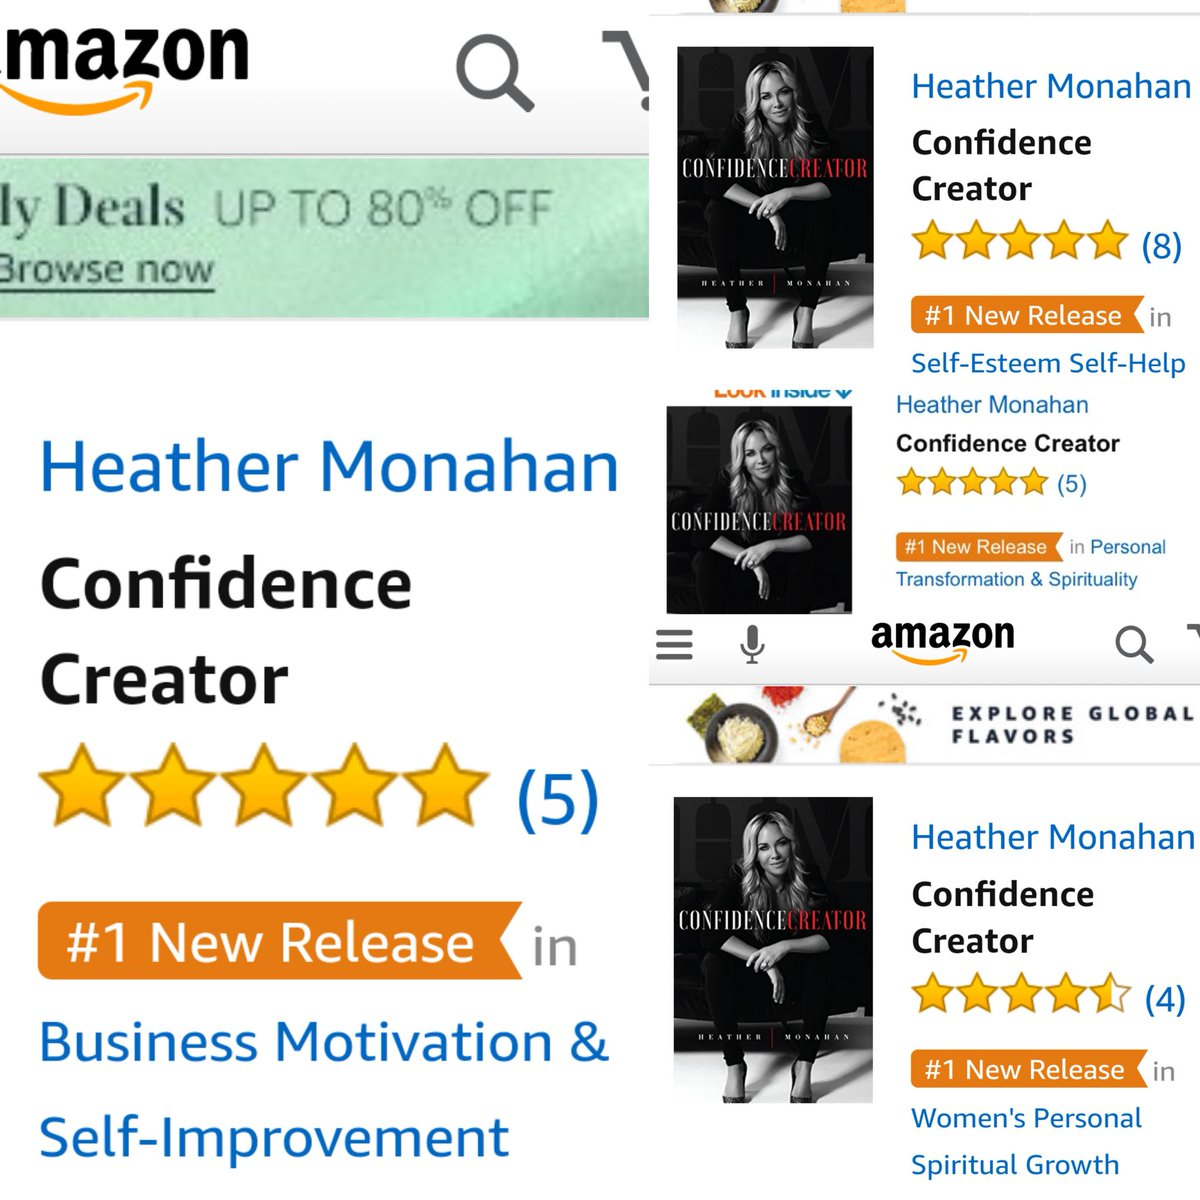 So excited Confidence Creator launched #1 in 4 categories! On amazon now https://t.co/ybLmxNiVAy